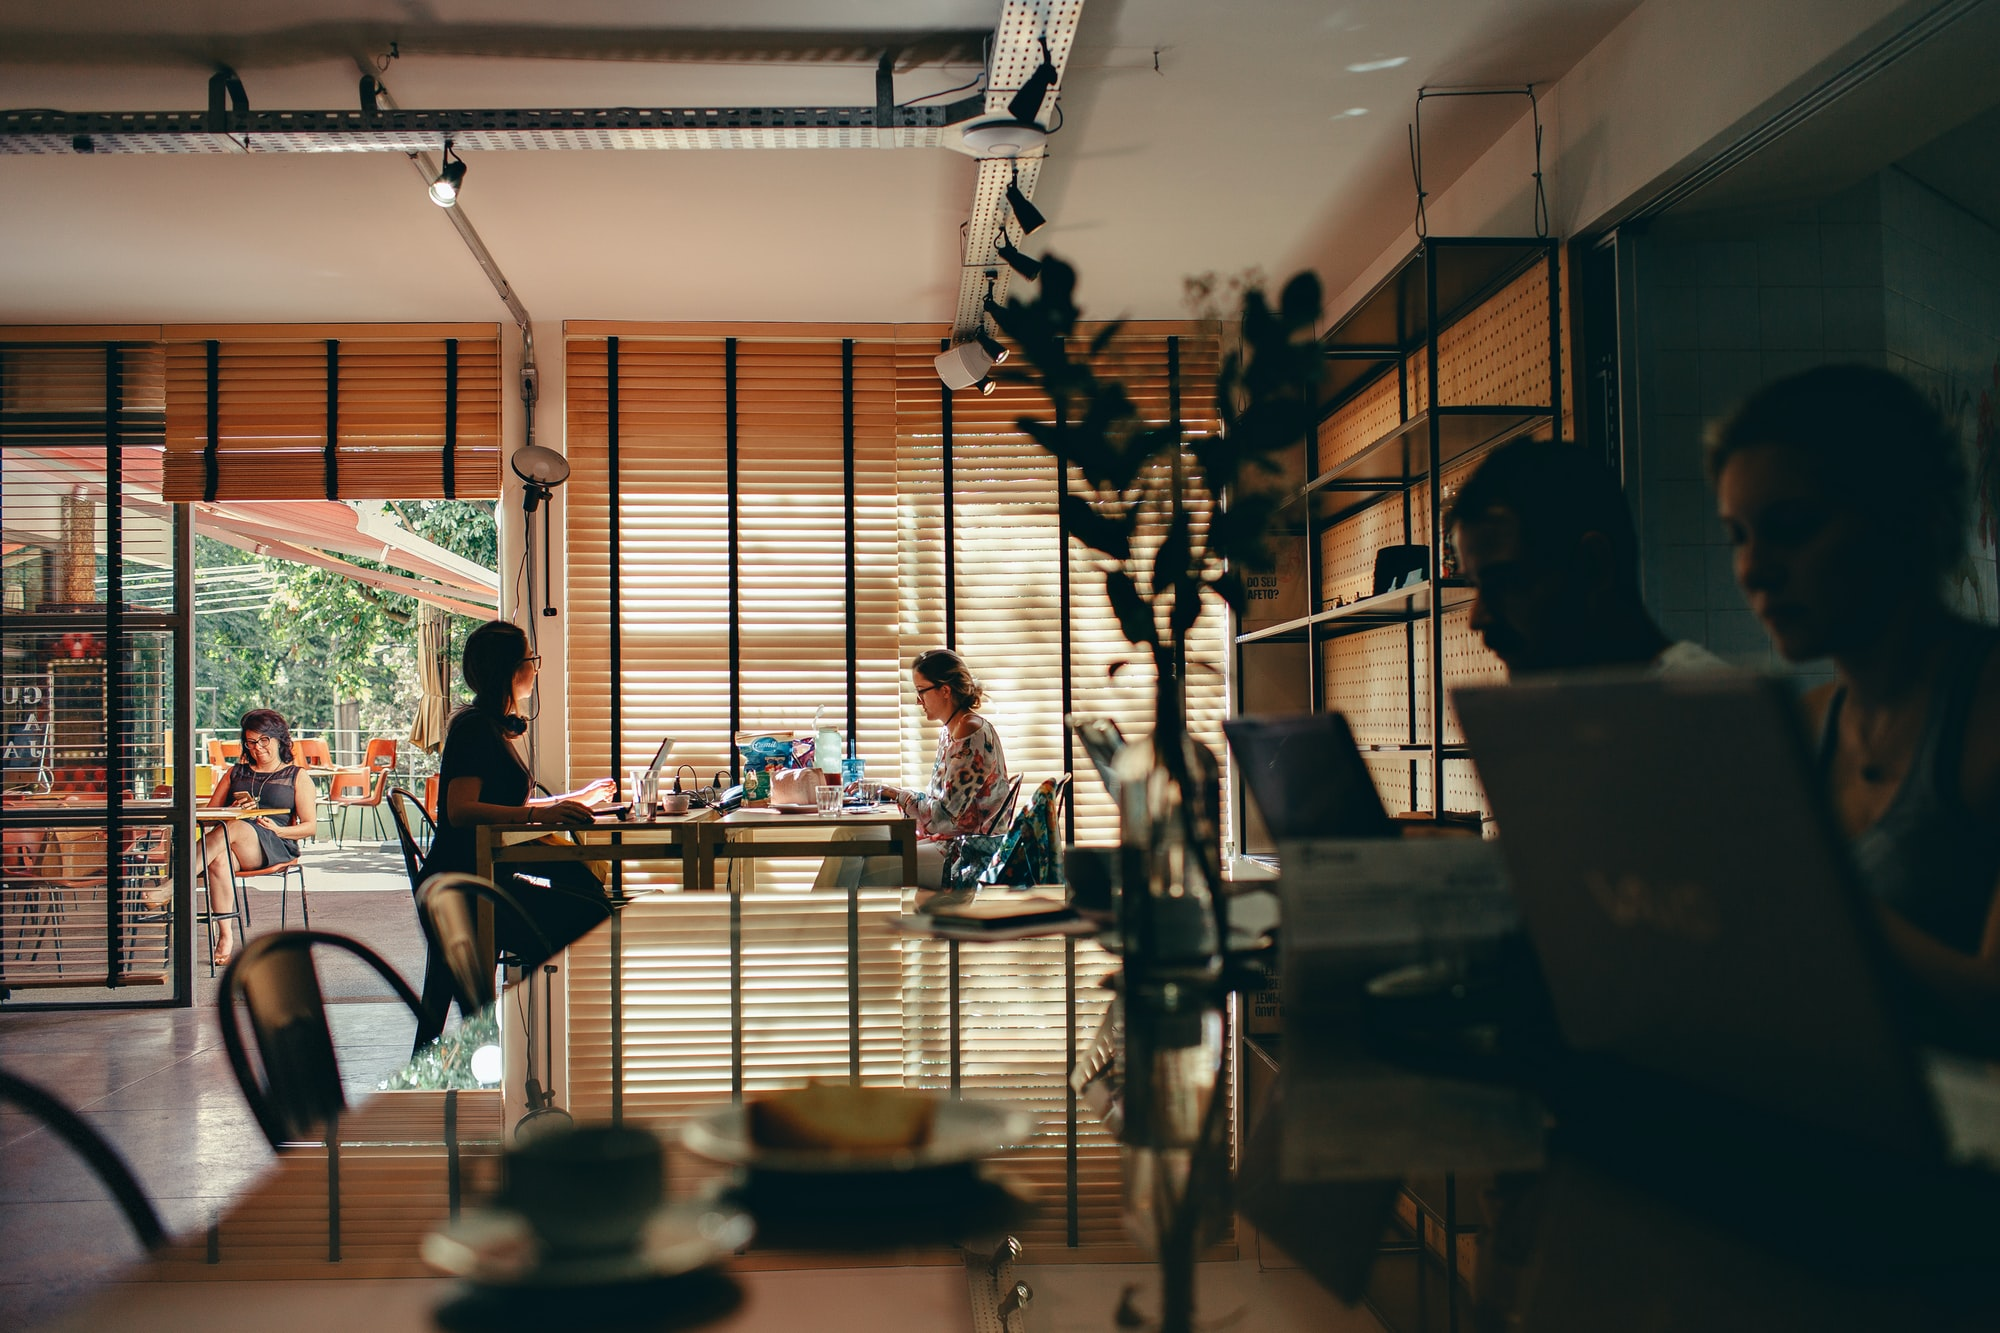 8 Ways to Increase Quality of Work Life feature image